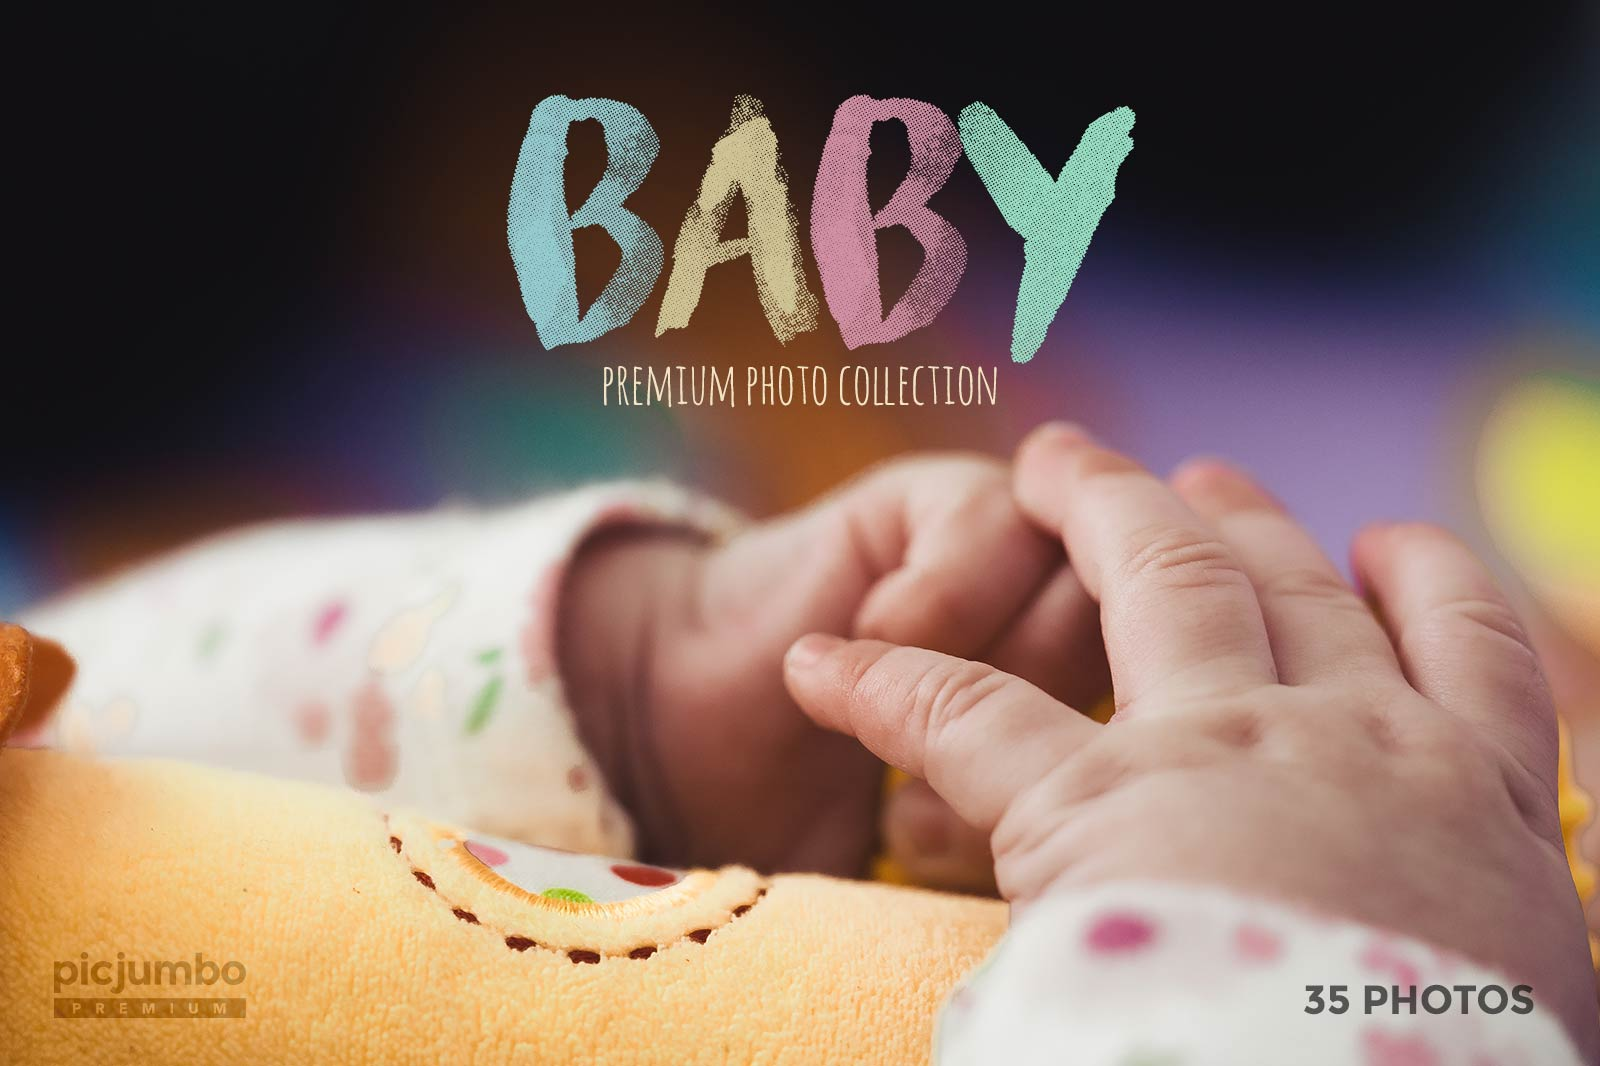 Baby stock photo collection